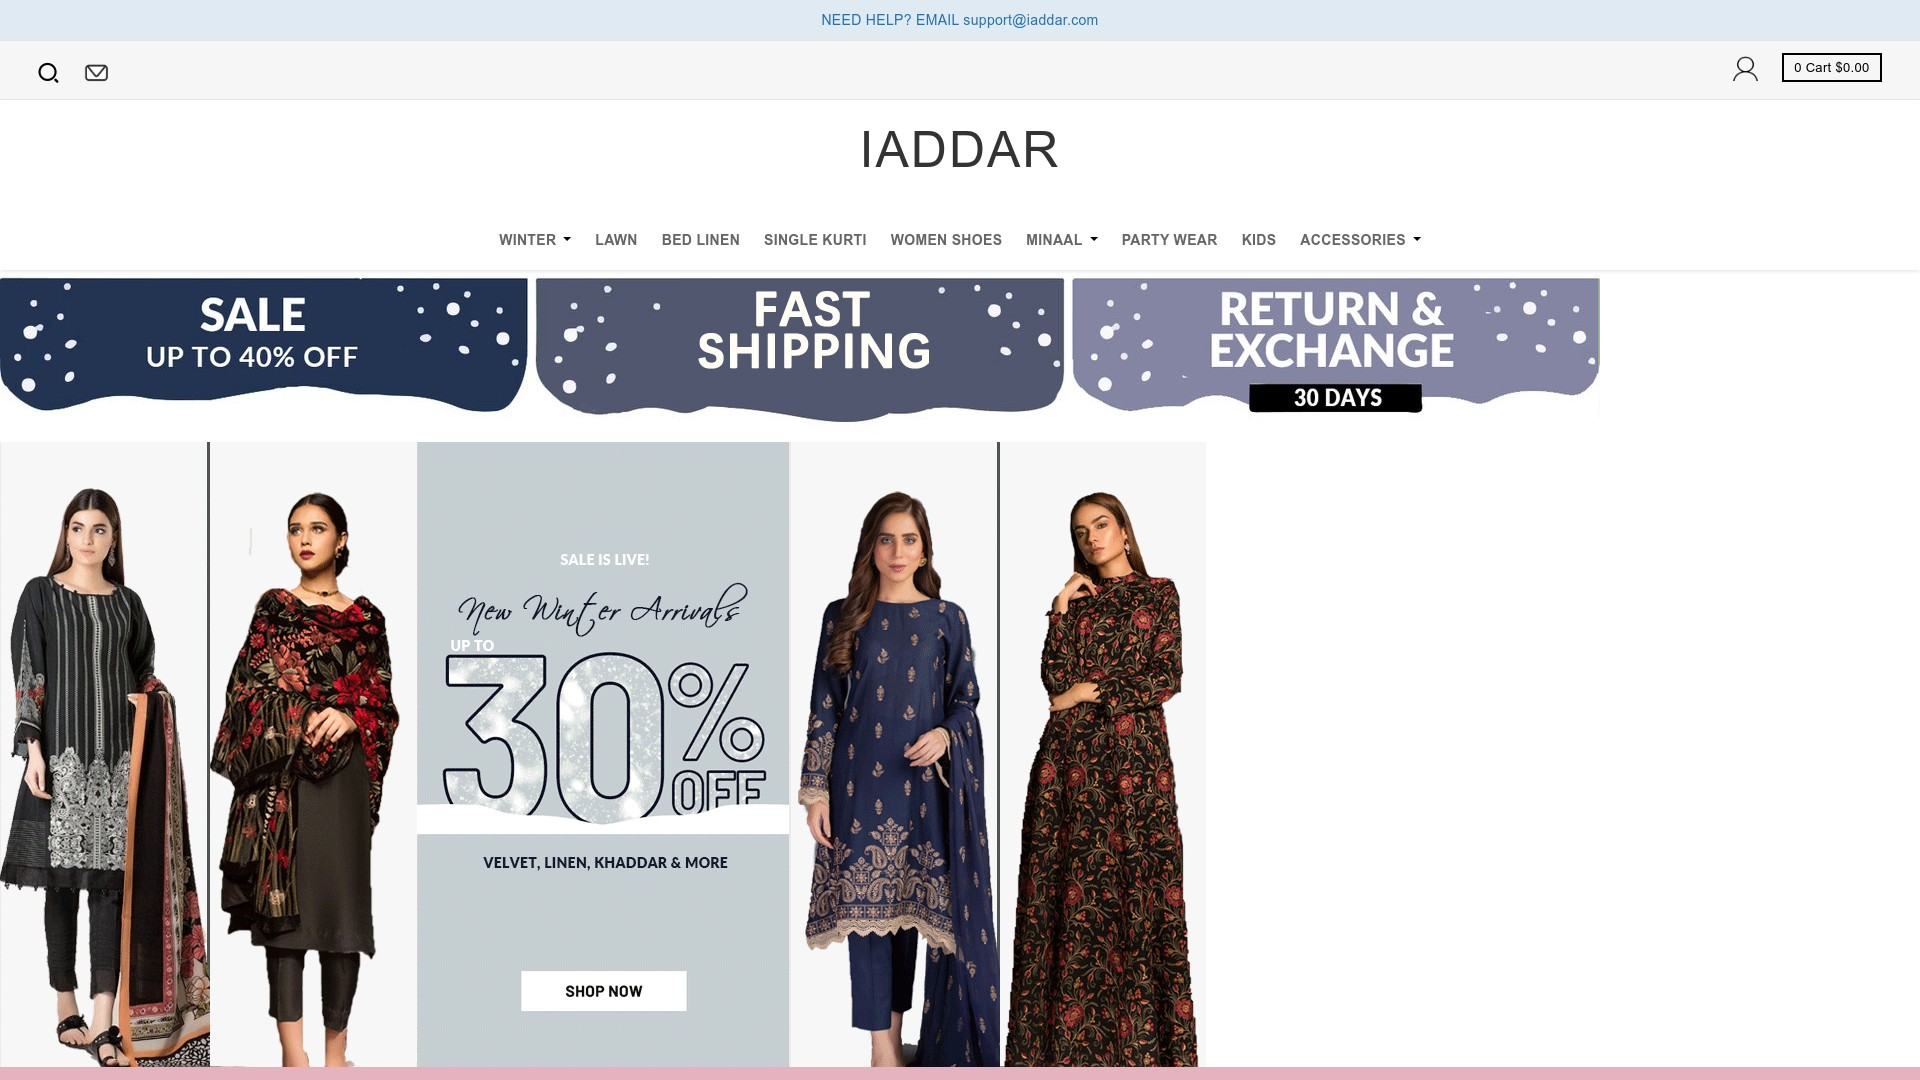 Iaddar Review  Is the Online Store a Scam?